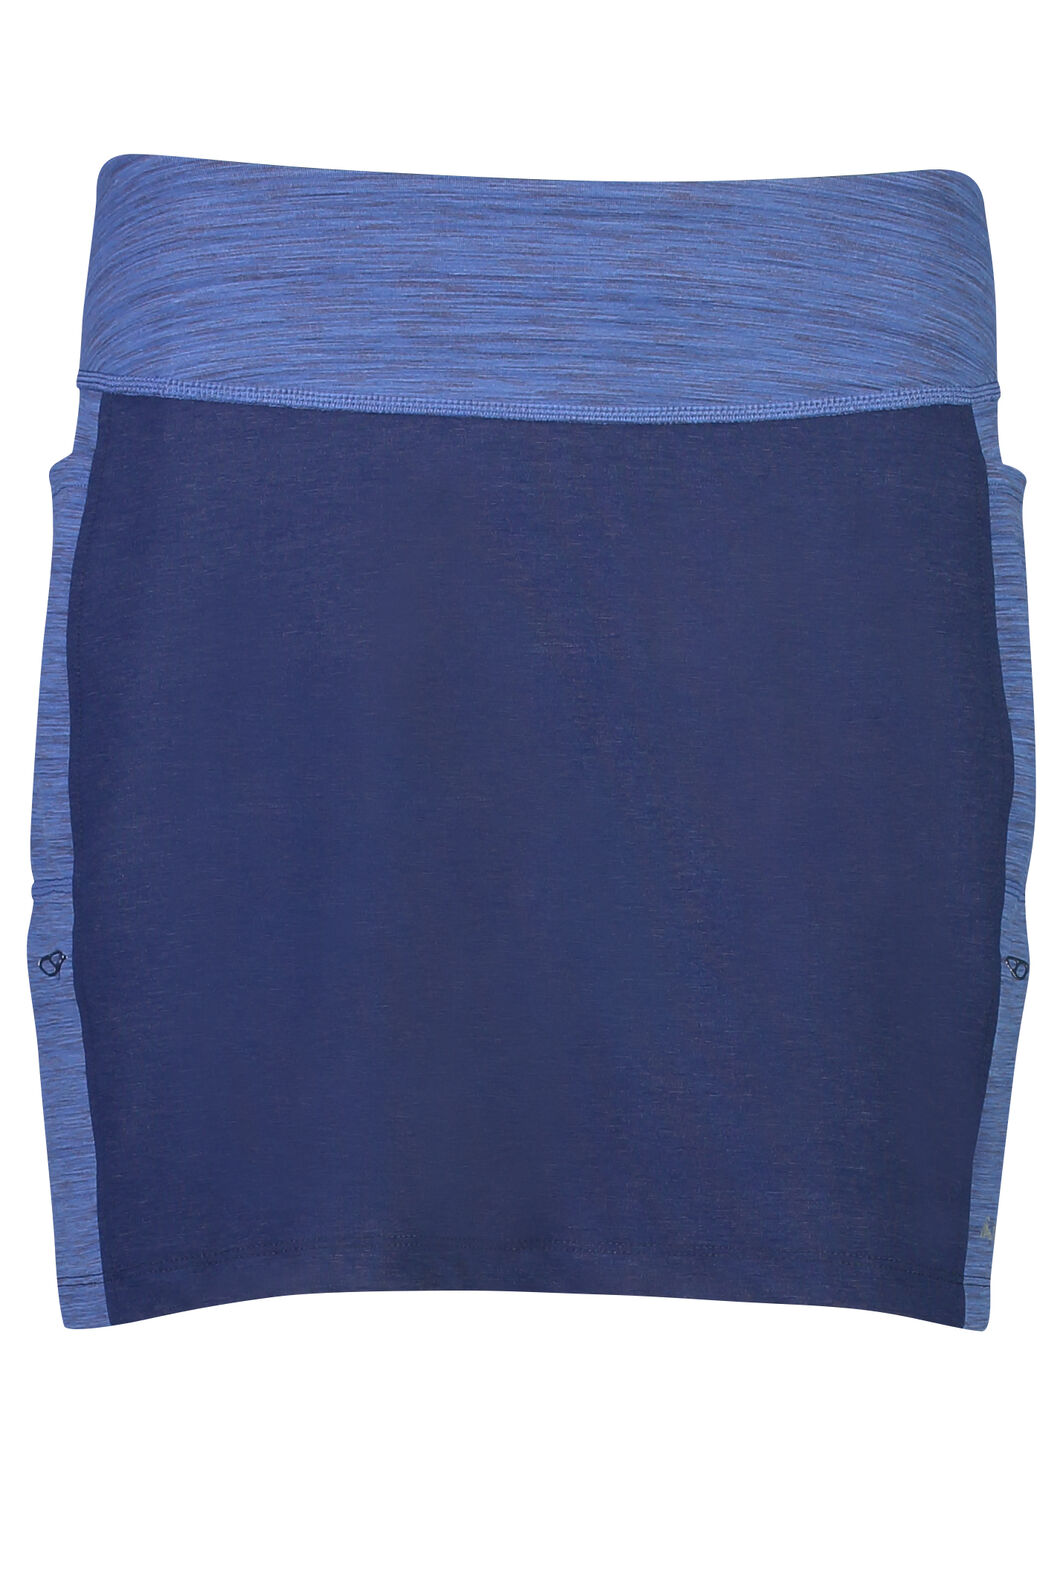 Macpac There and Back Skirt - Women's, Medieval Blue, hi-res